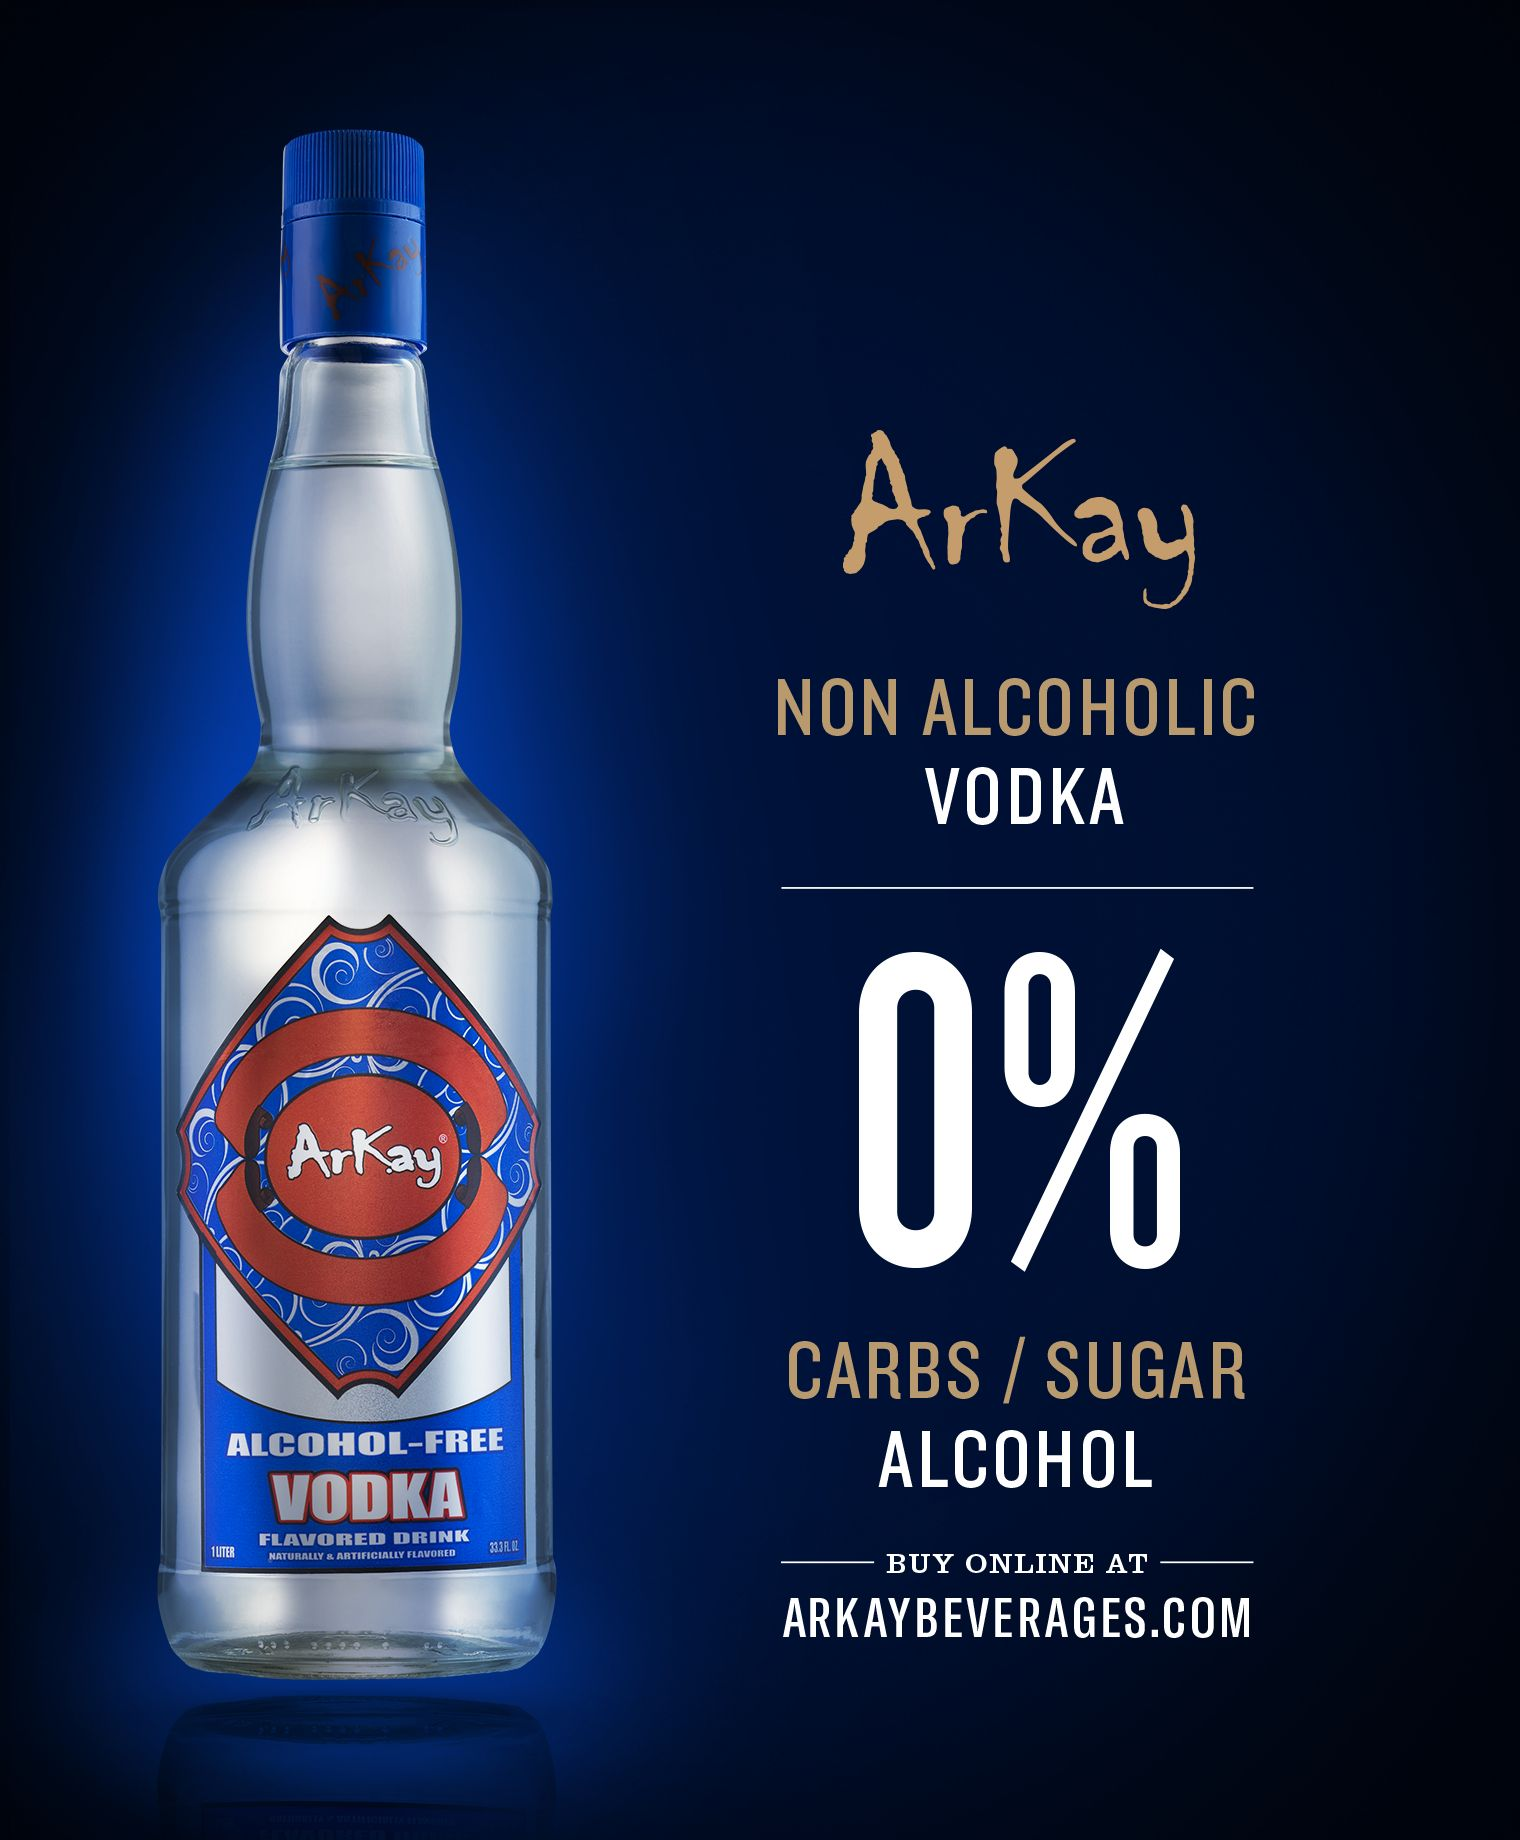 Arkay Zero Proof partners with DoorDash.com for alcohol free spirits delivery service